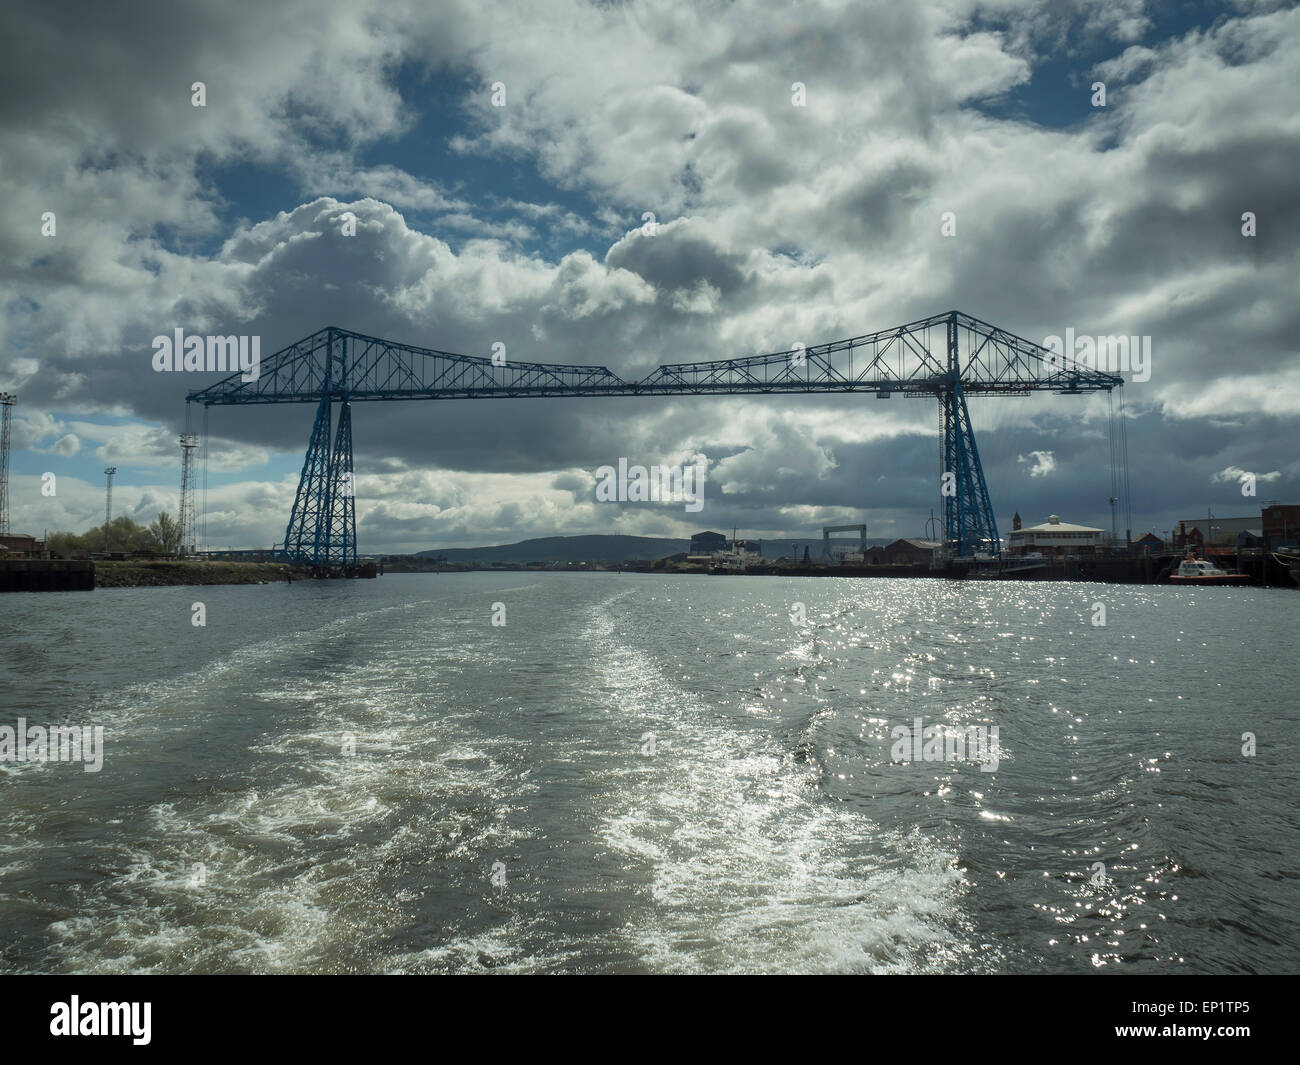 Middlesbrough Transporter Bridge from the River Tees - Stock Image